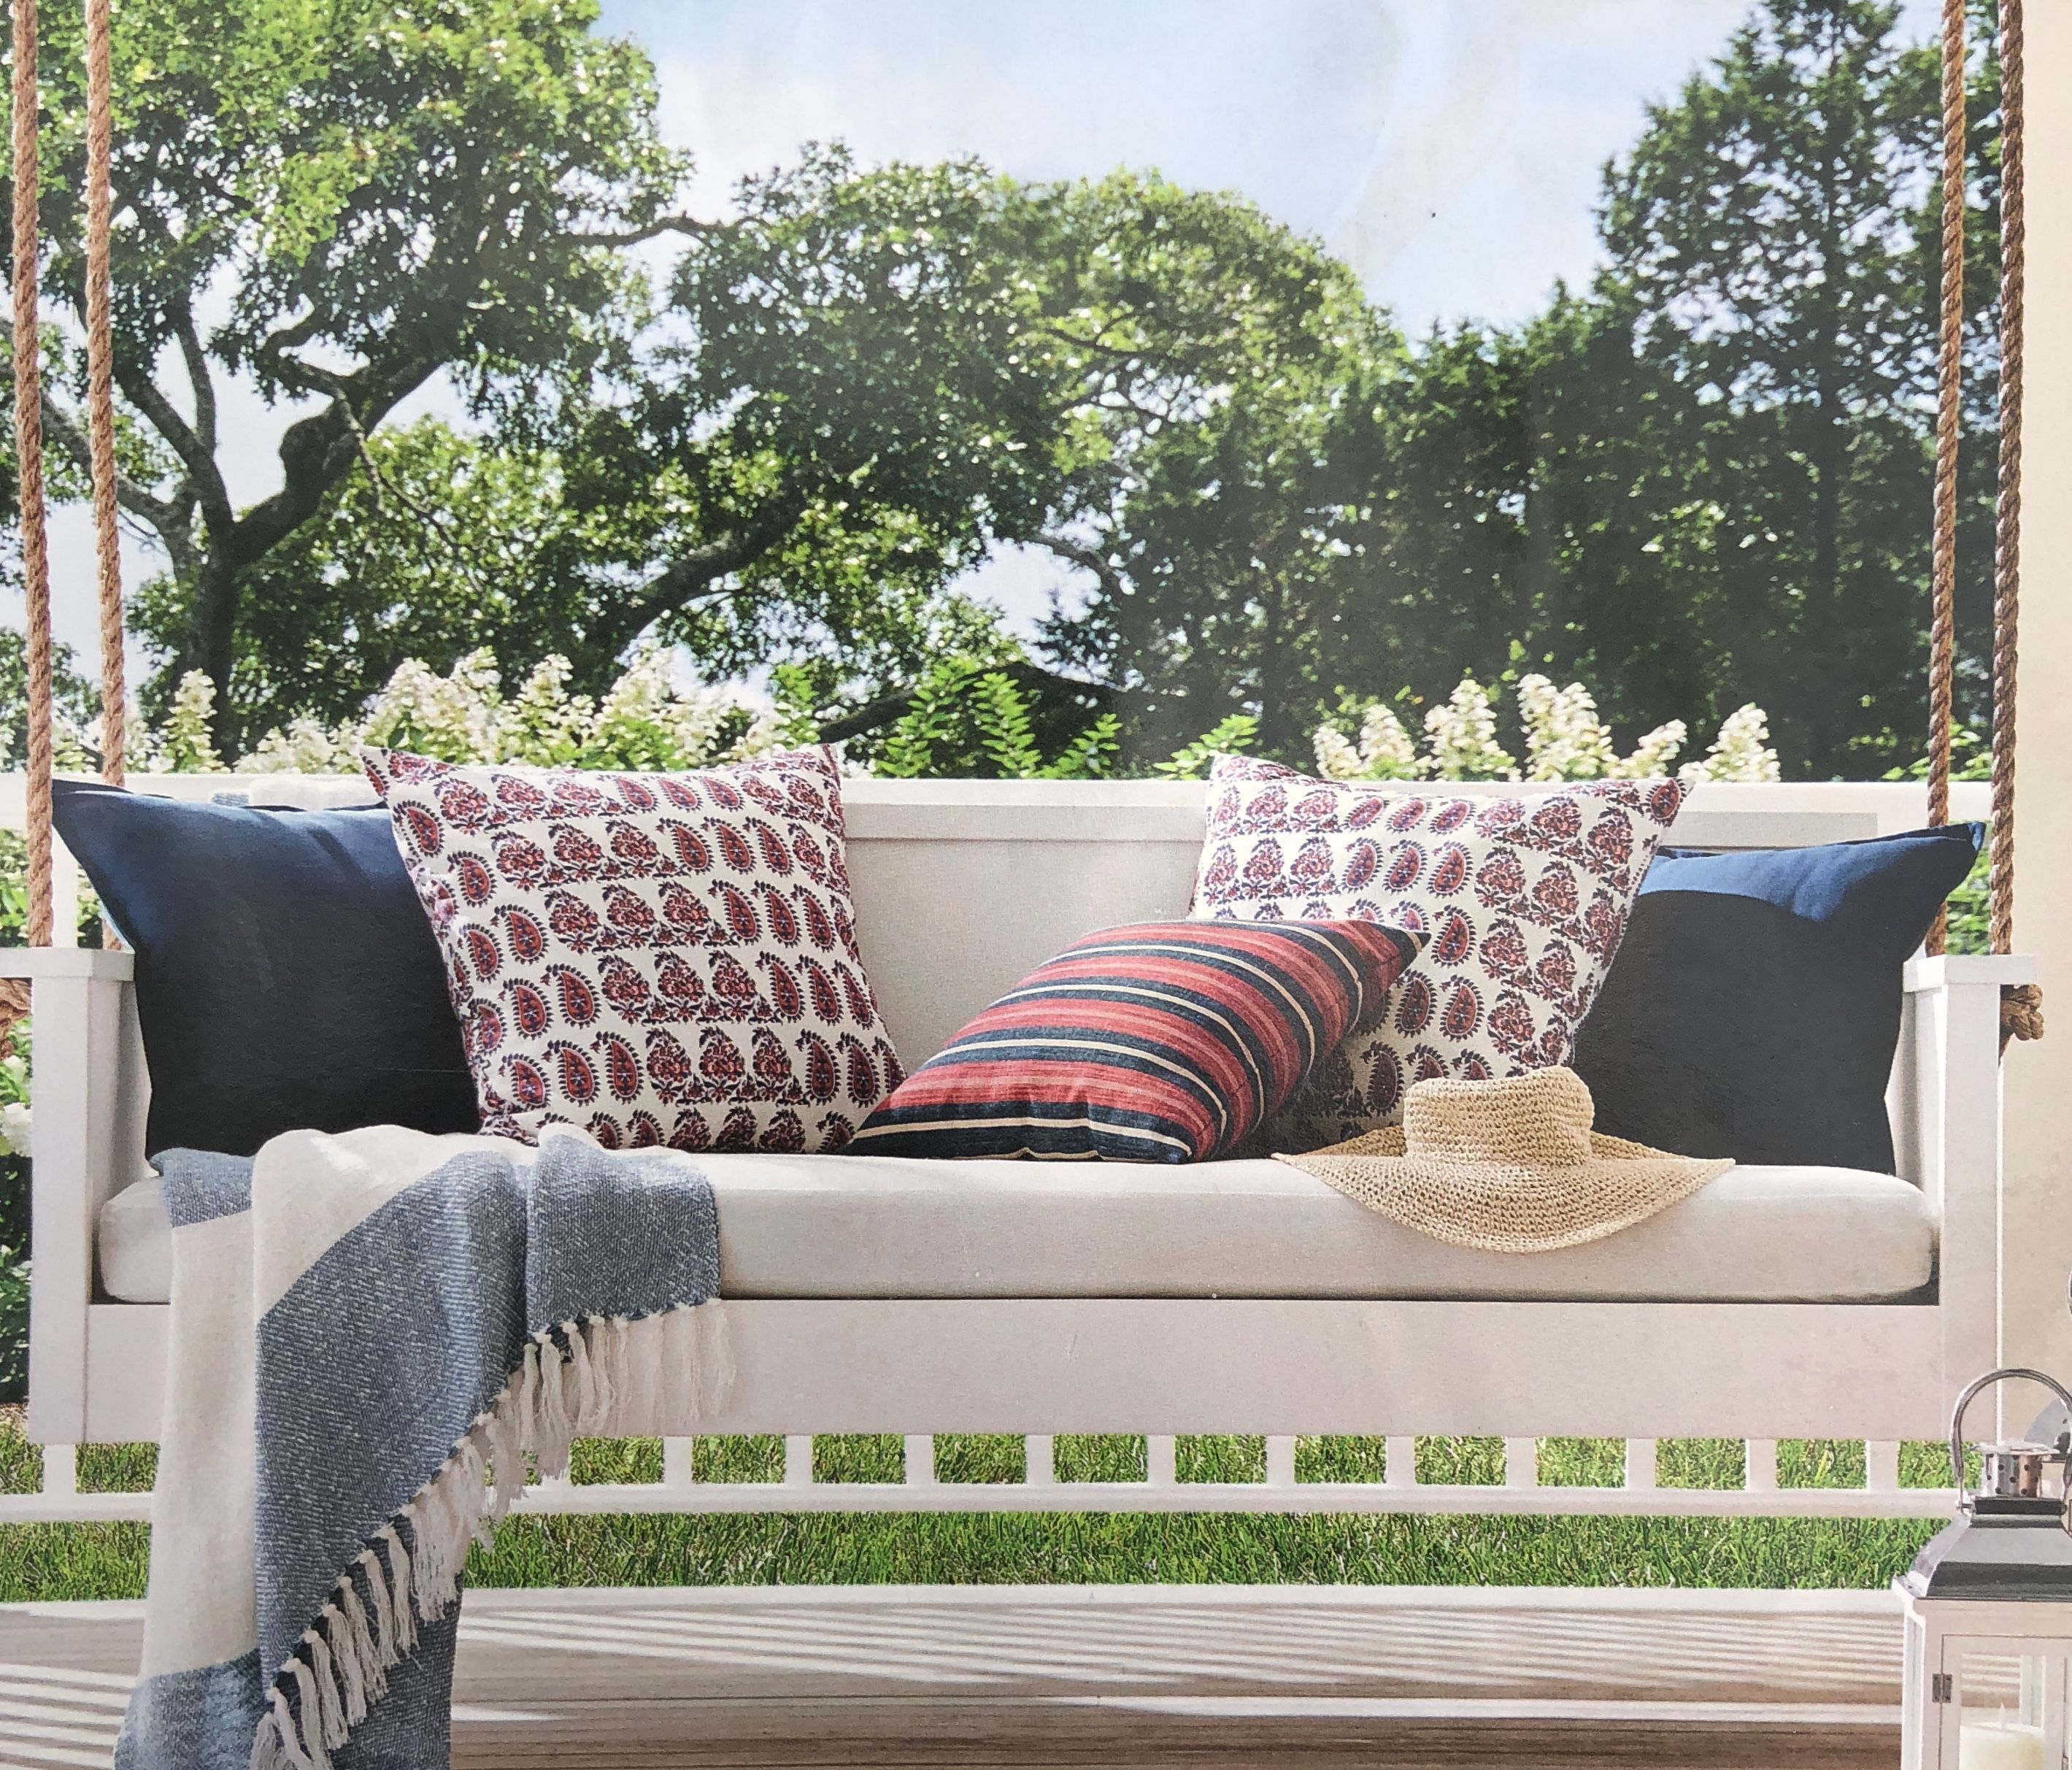 Pottery Barn Porch Swing: The Perfect Daybed Setup Inspo Via Pottery Barn